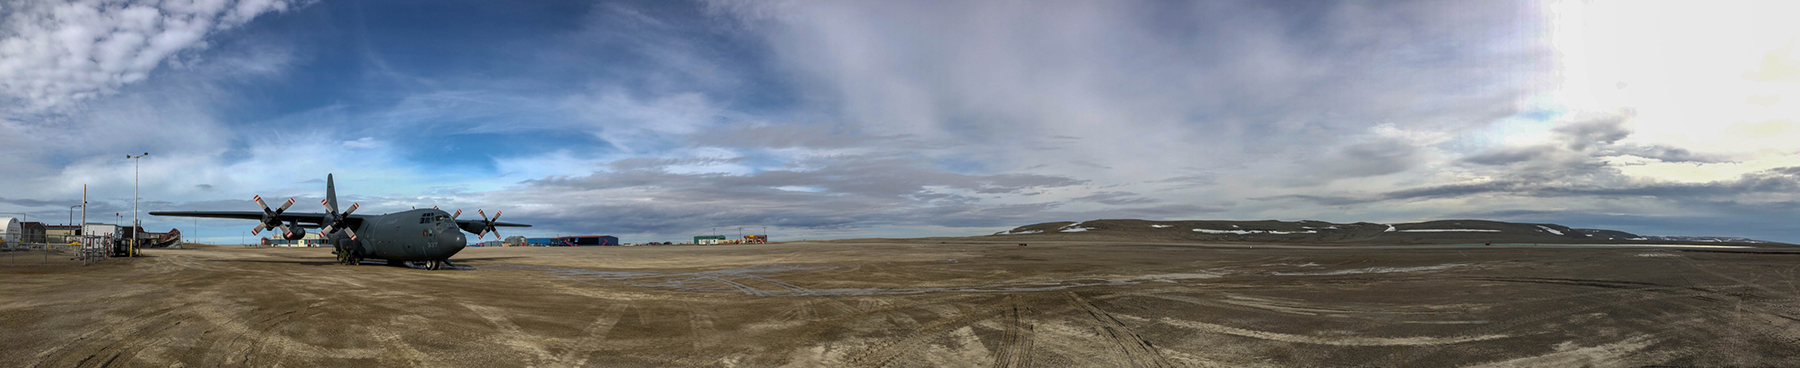 A panoramic view of Resolute Bay Airport, in Nunavut. PHOTO: Ignatius Rigor